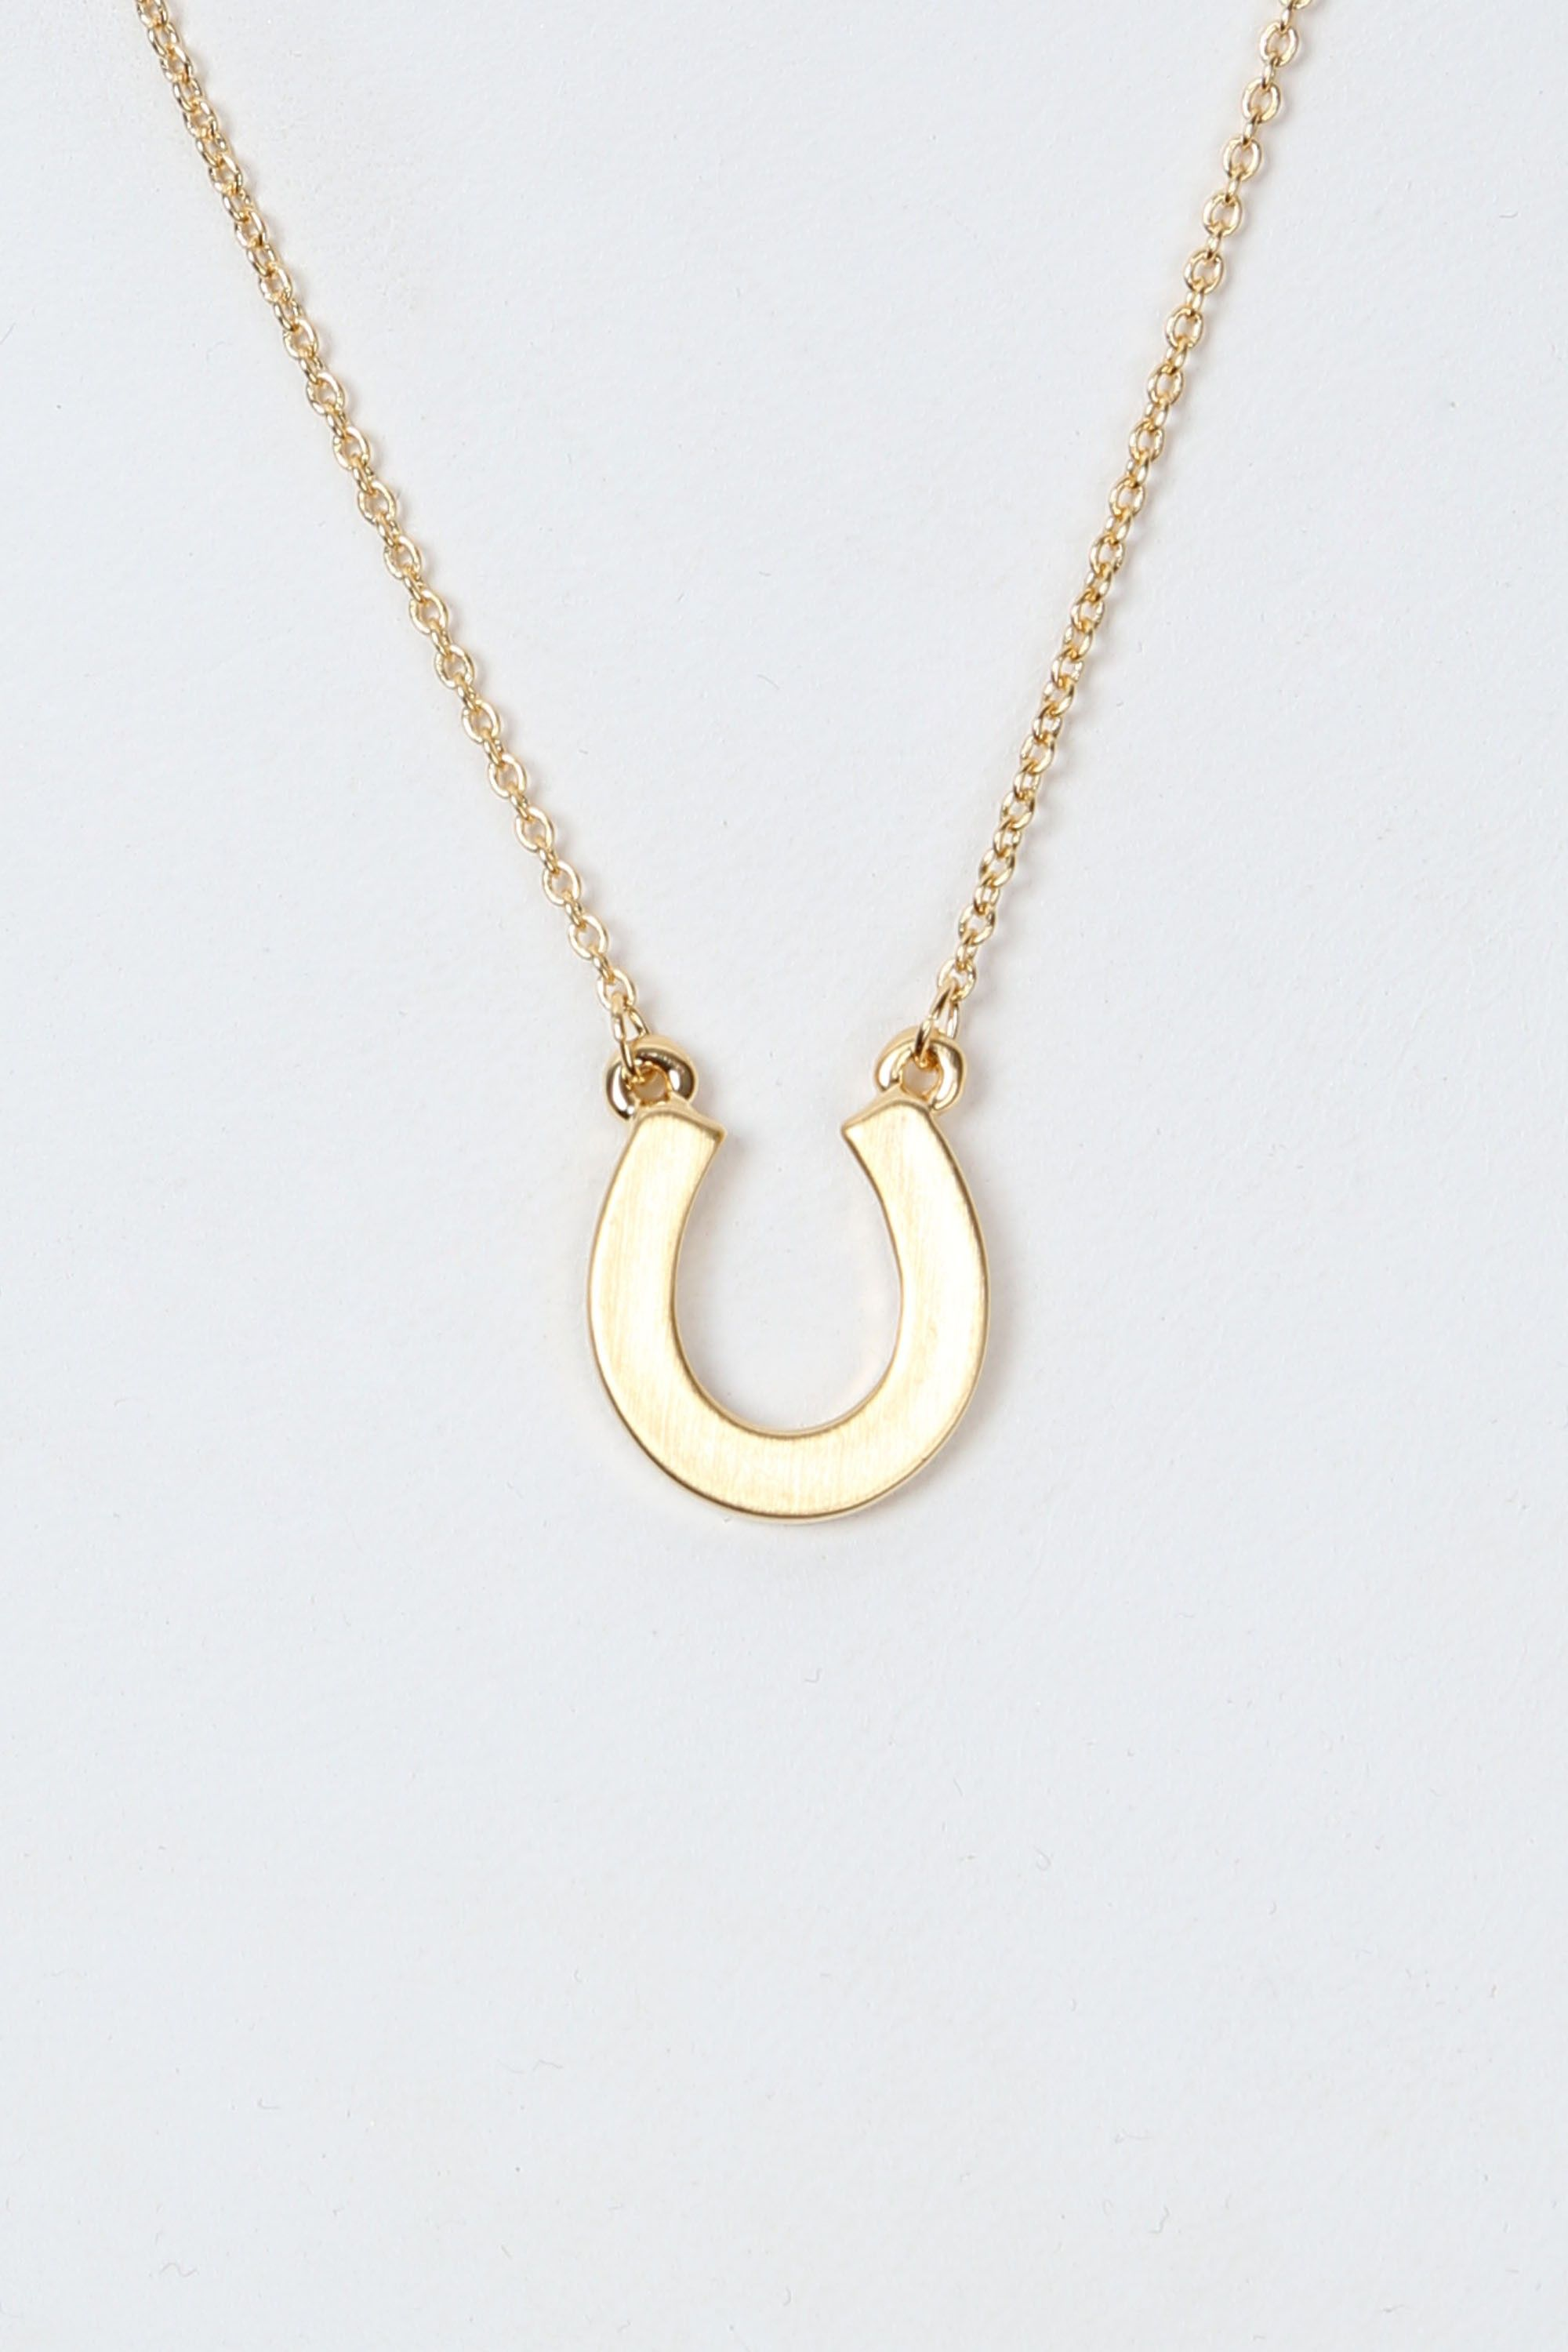 horsegold horse necklace gold